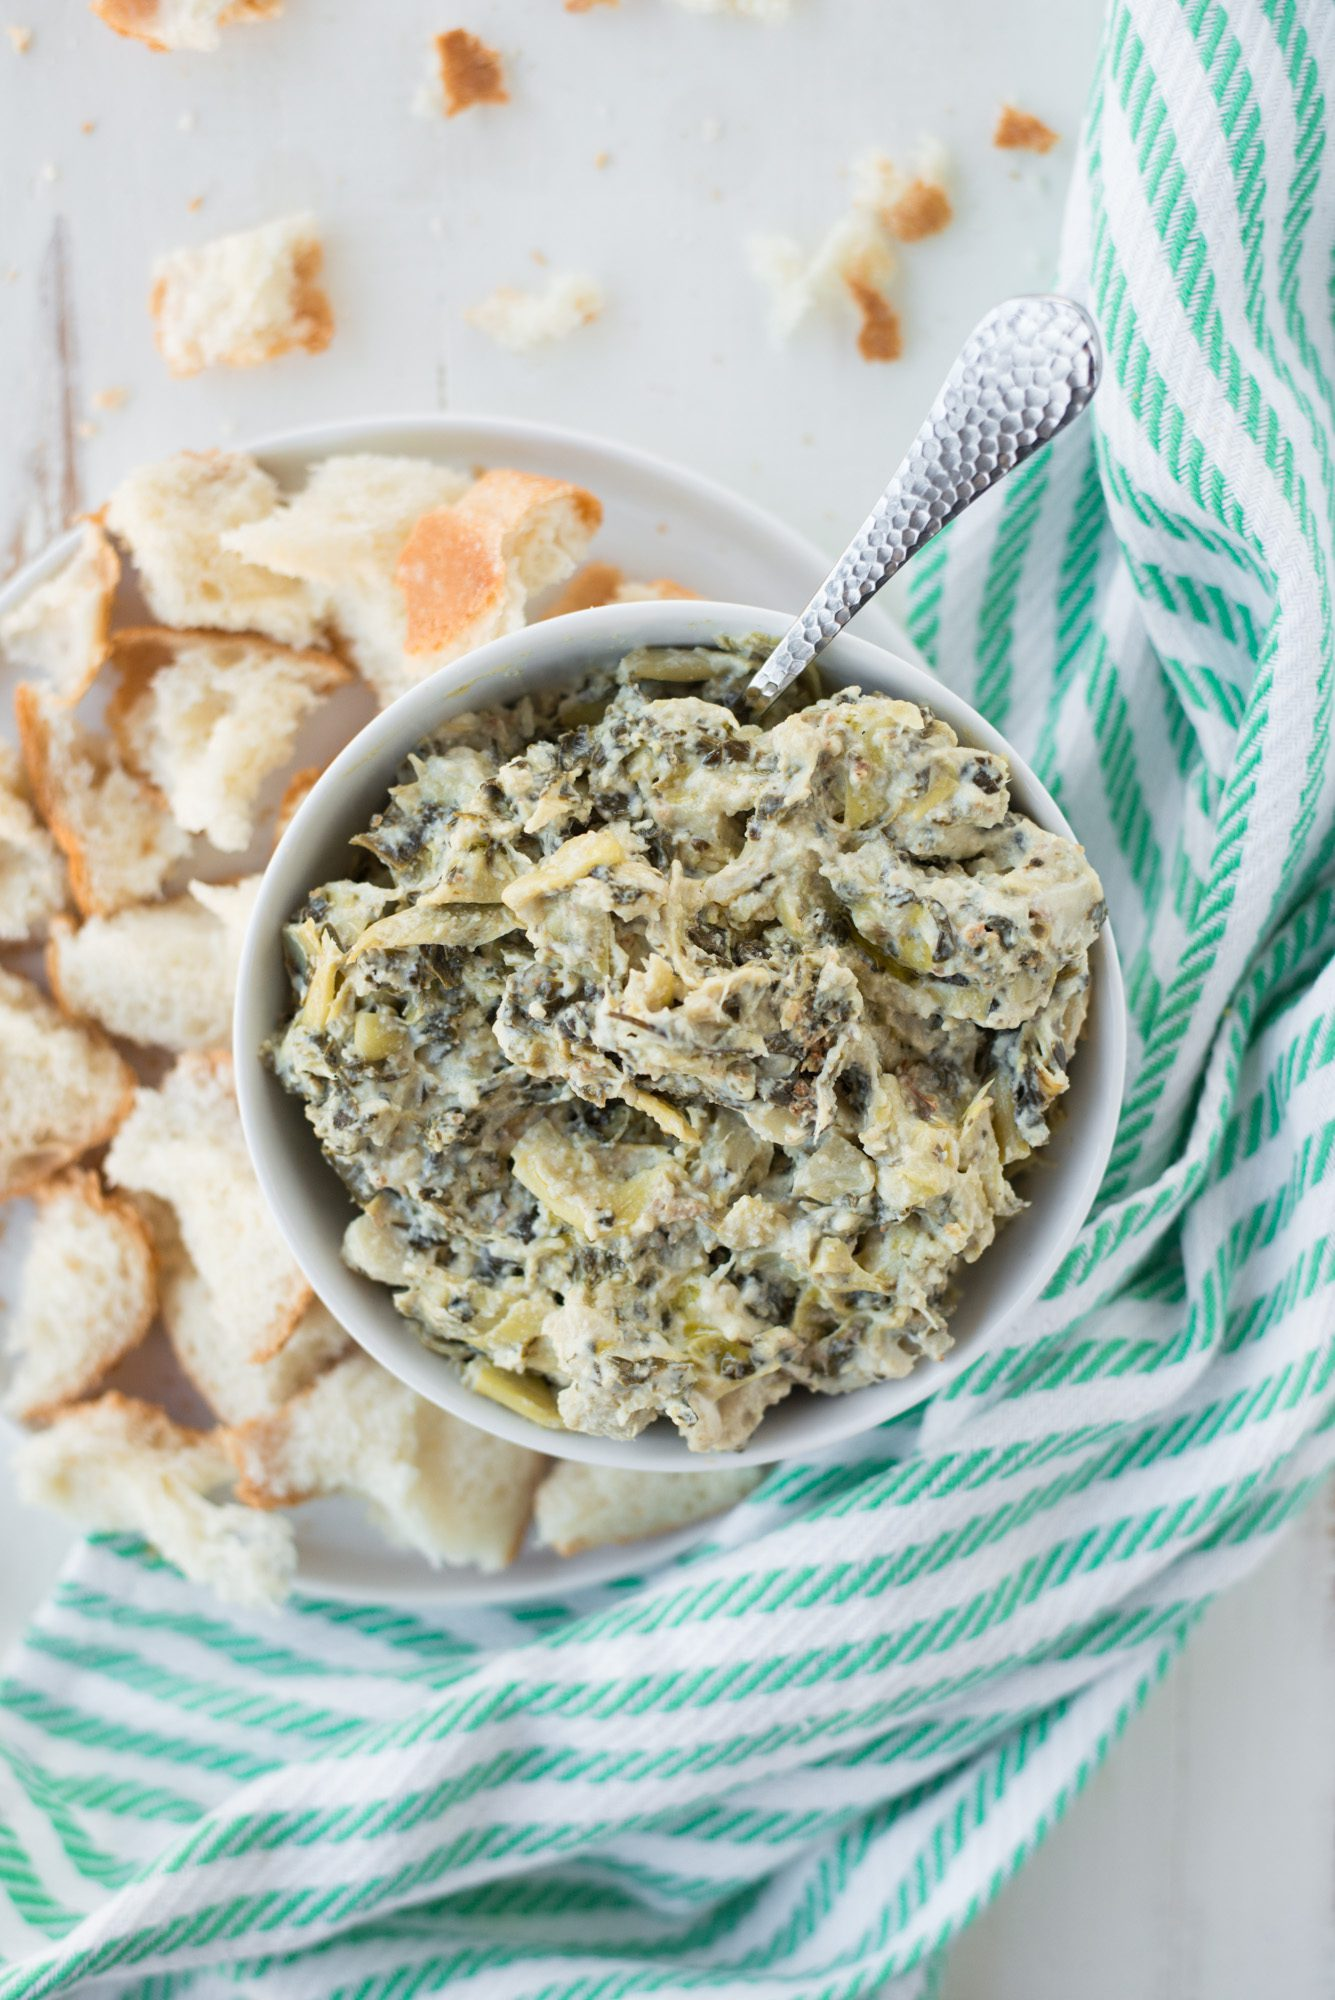 bowl of artichoke dip with bread on white plate with striped napkin